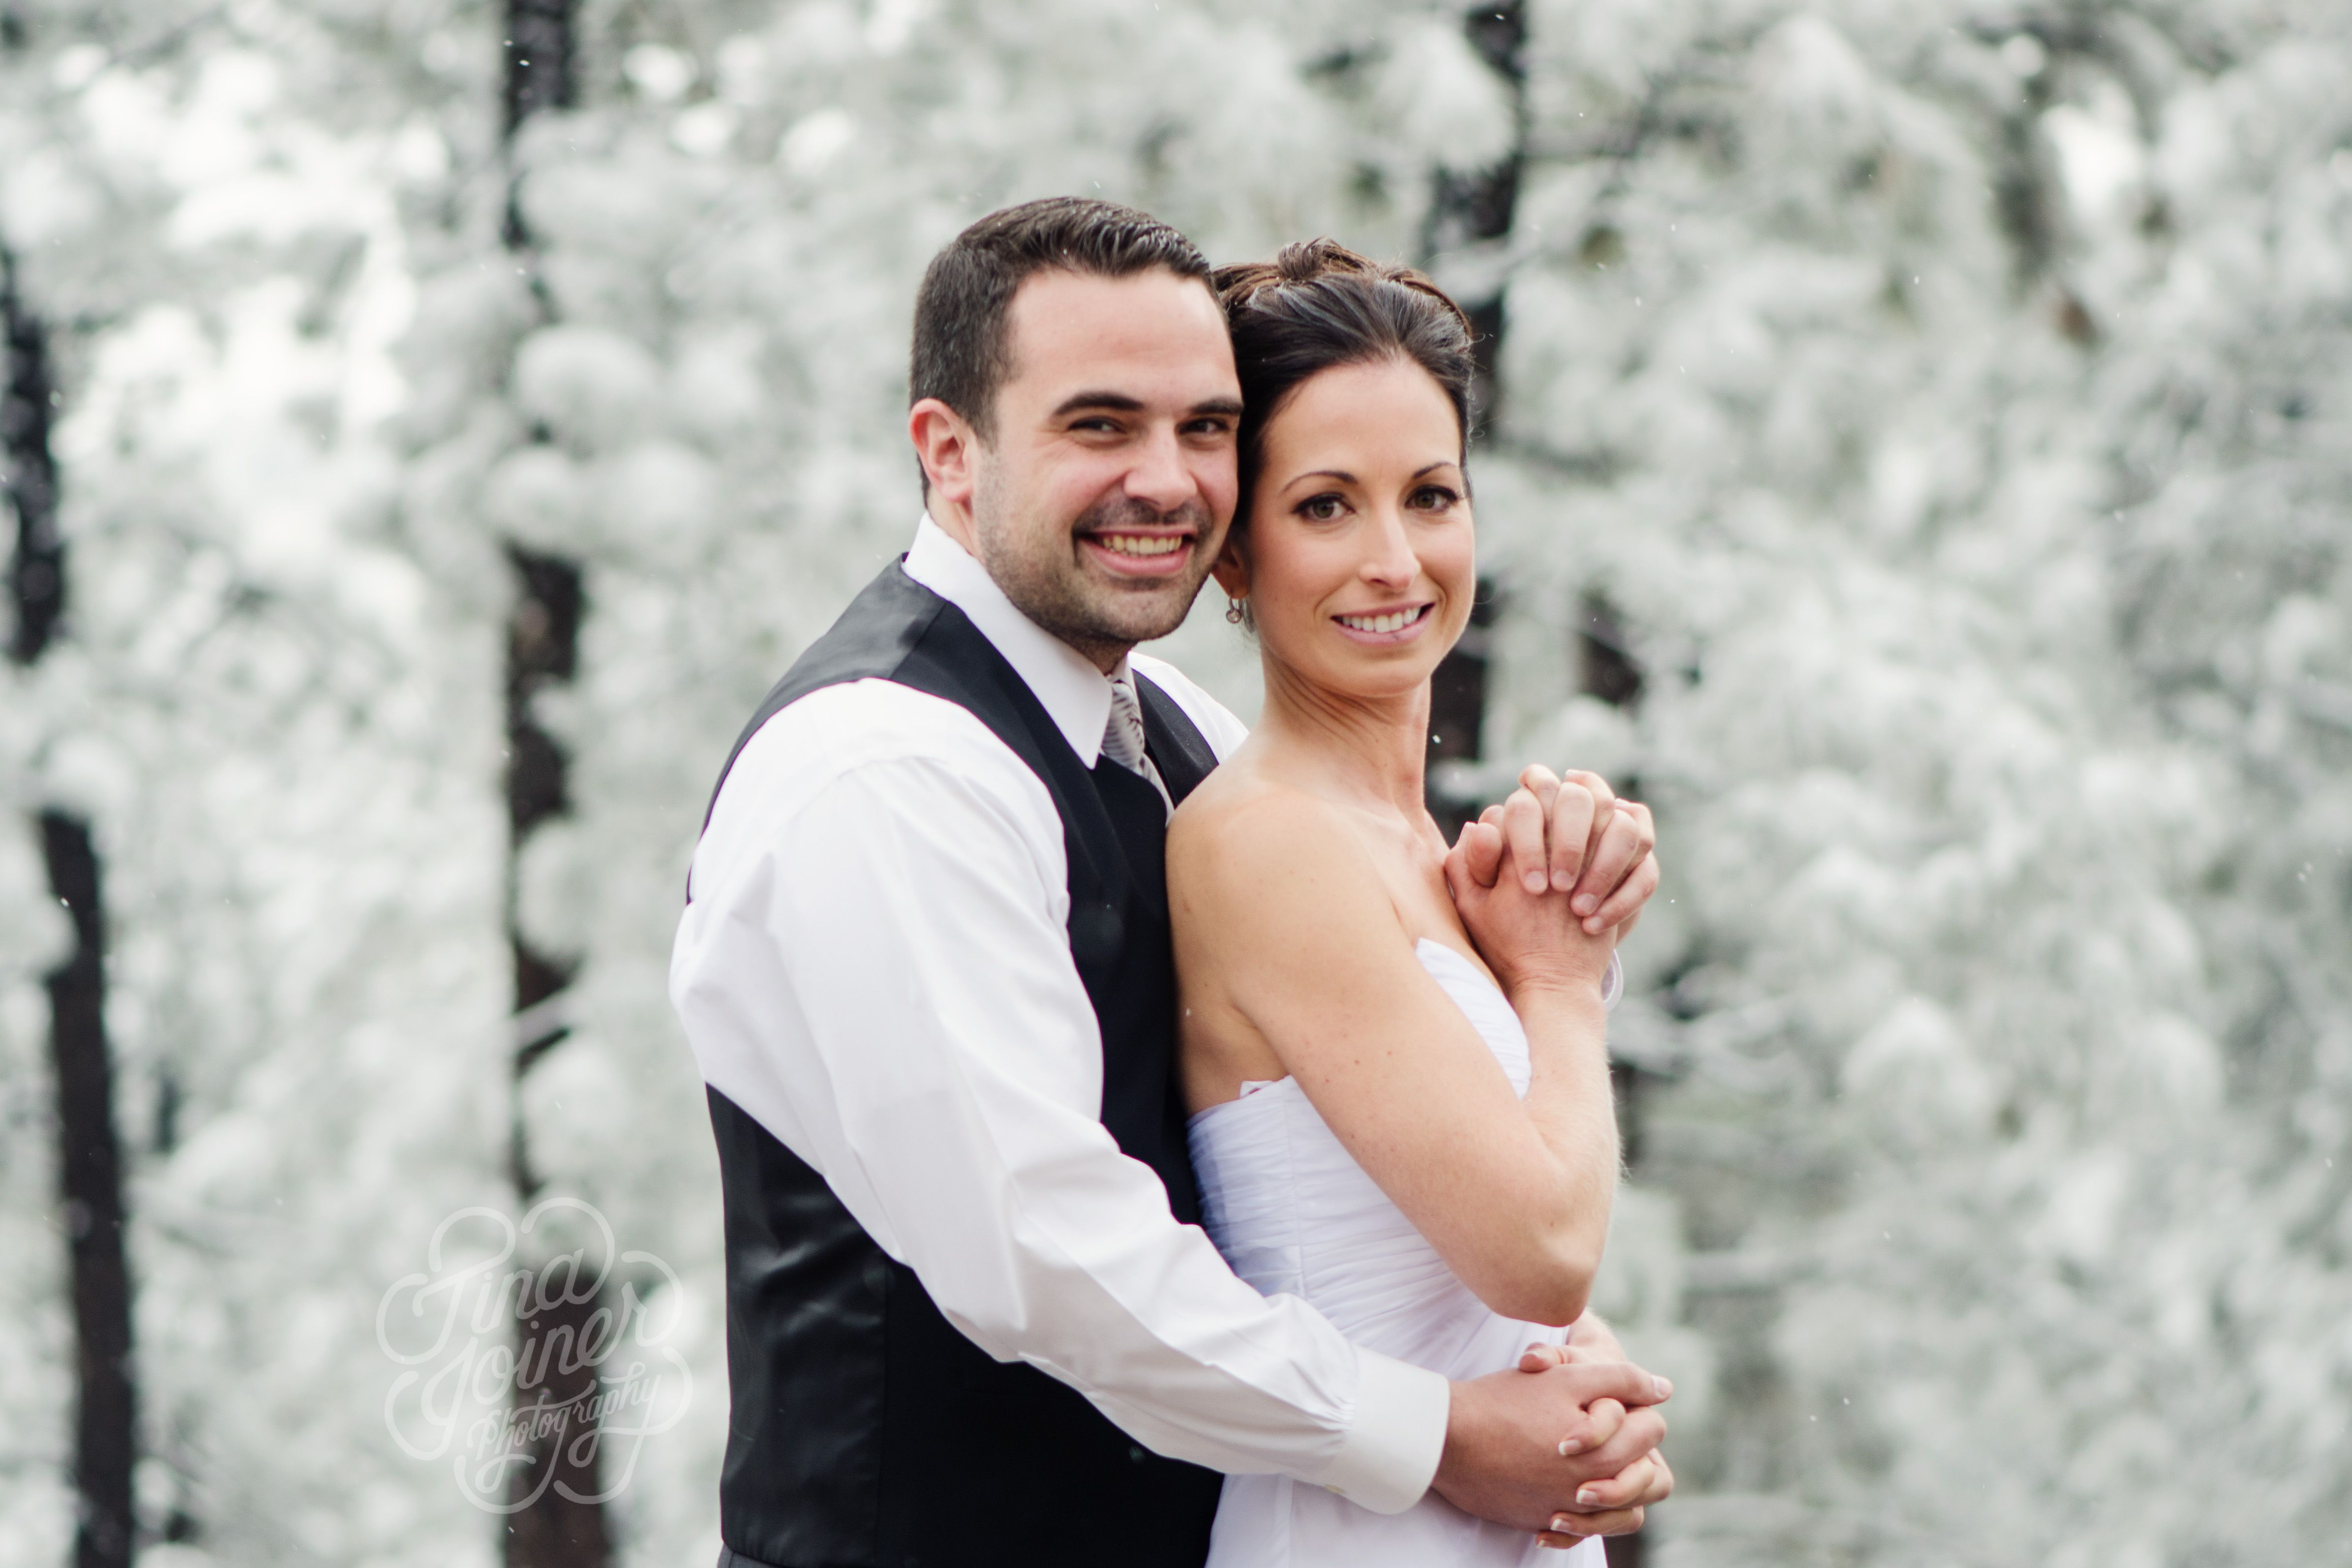 Wedding photography posing ideas winter wedding colorado wedding photography posing ideas winter wedding colorado wedding outdoor wedding boettcher mansion denver wedding photographer colorado springs junglespirit Image collections